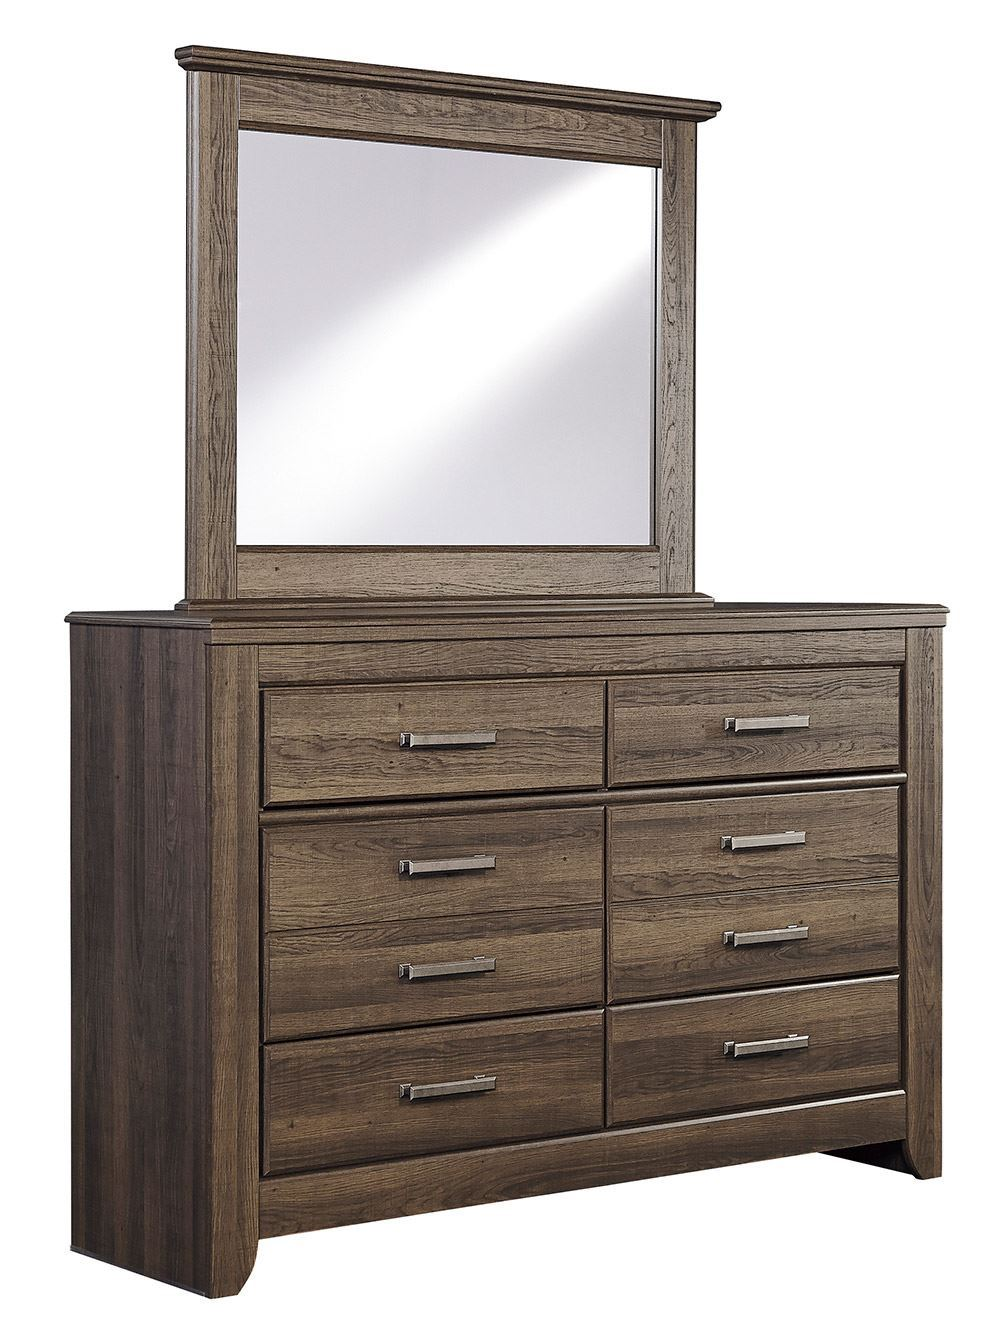 Picture of Juararo Youth Dresser and Mirror Set